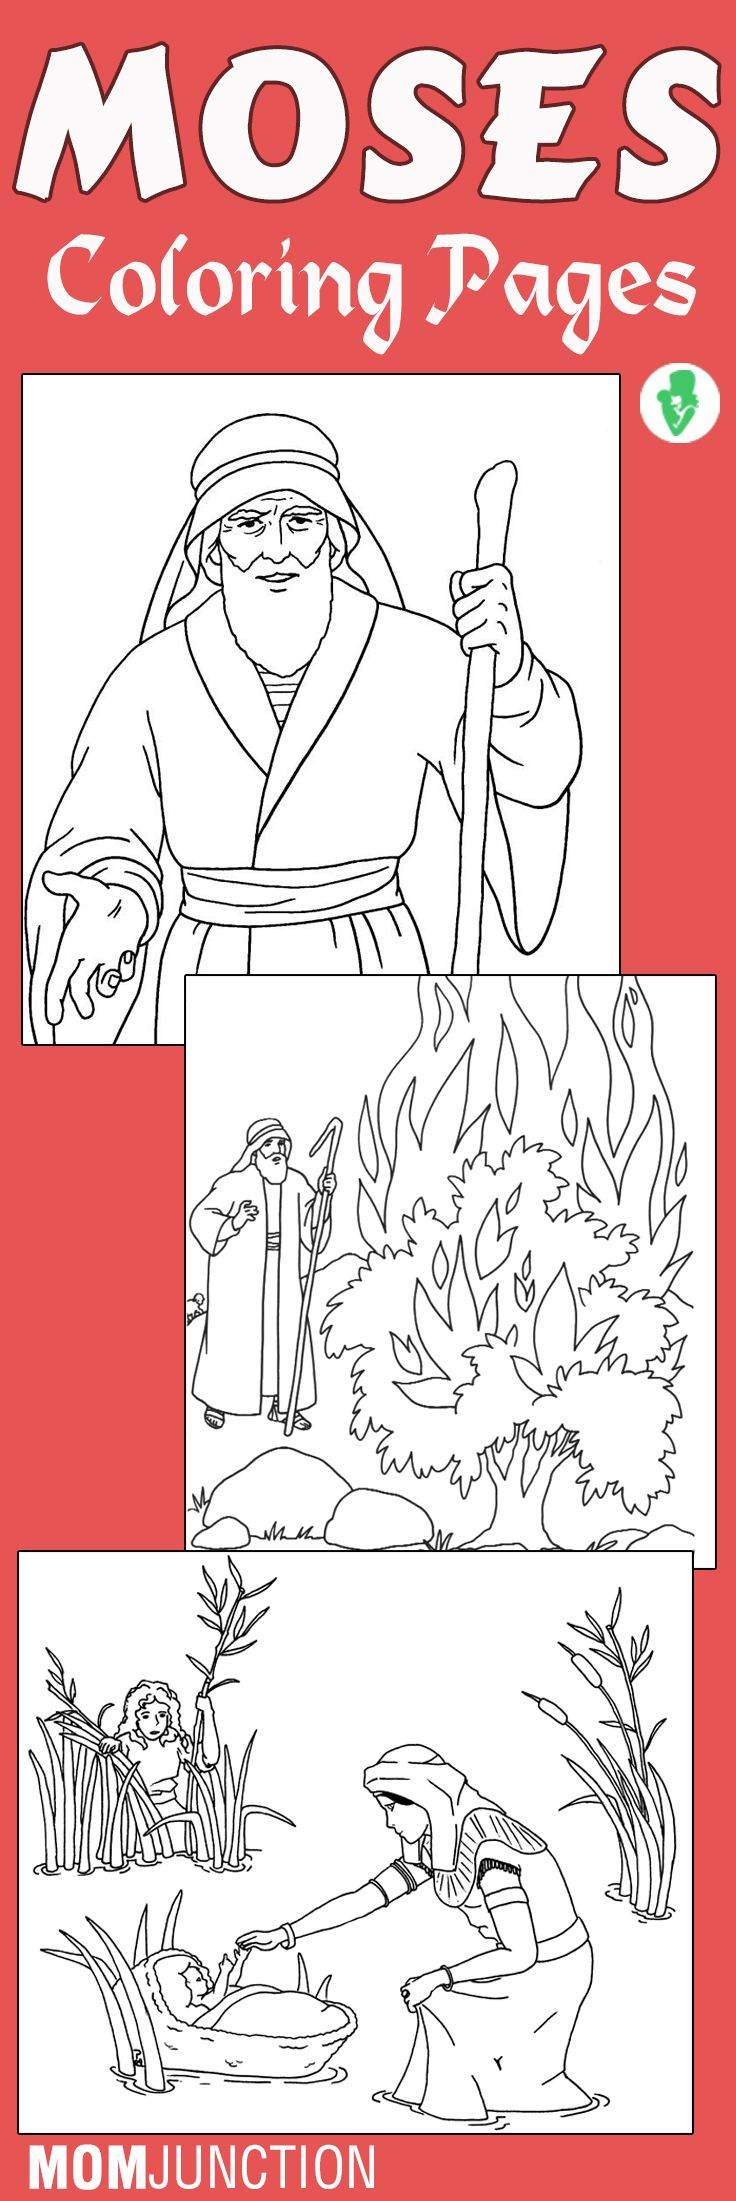 Moses Coloring Pages Free Printables Red sea Sunday school and